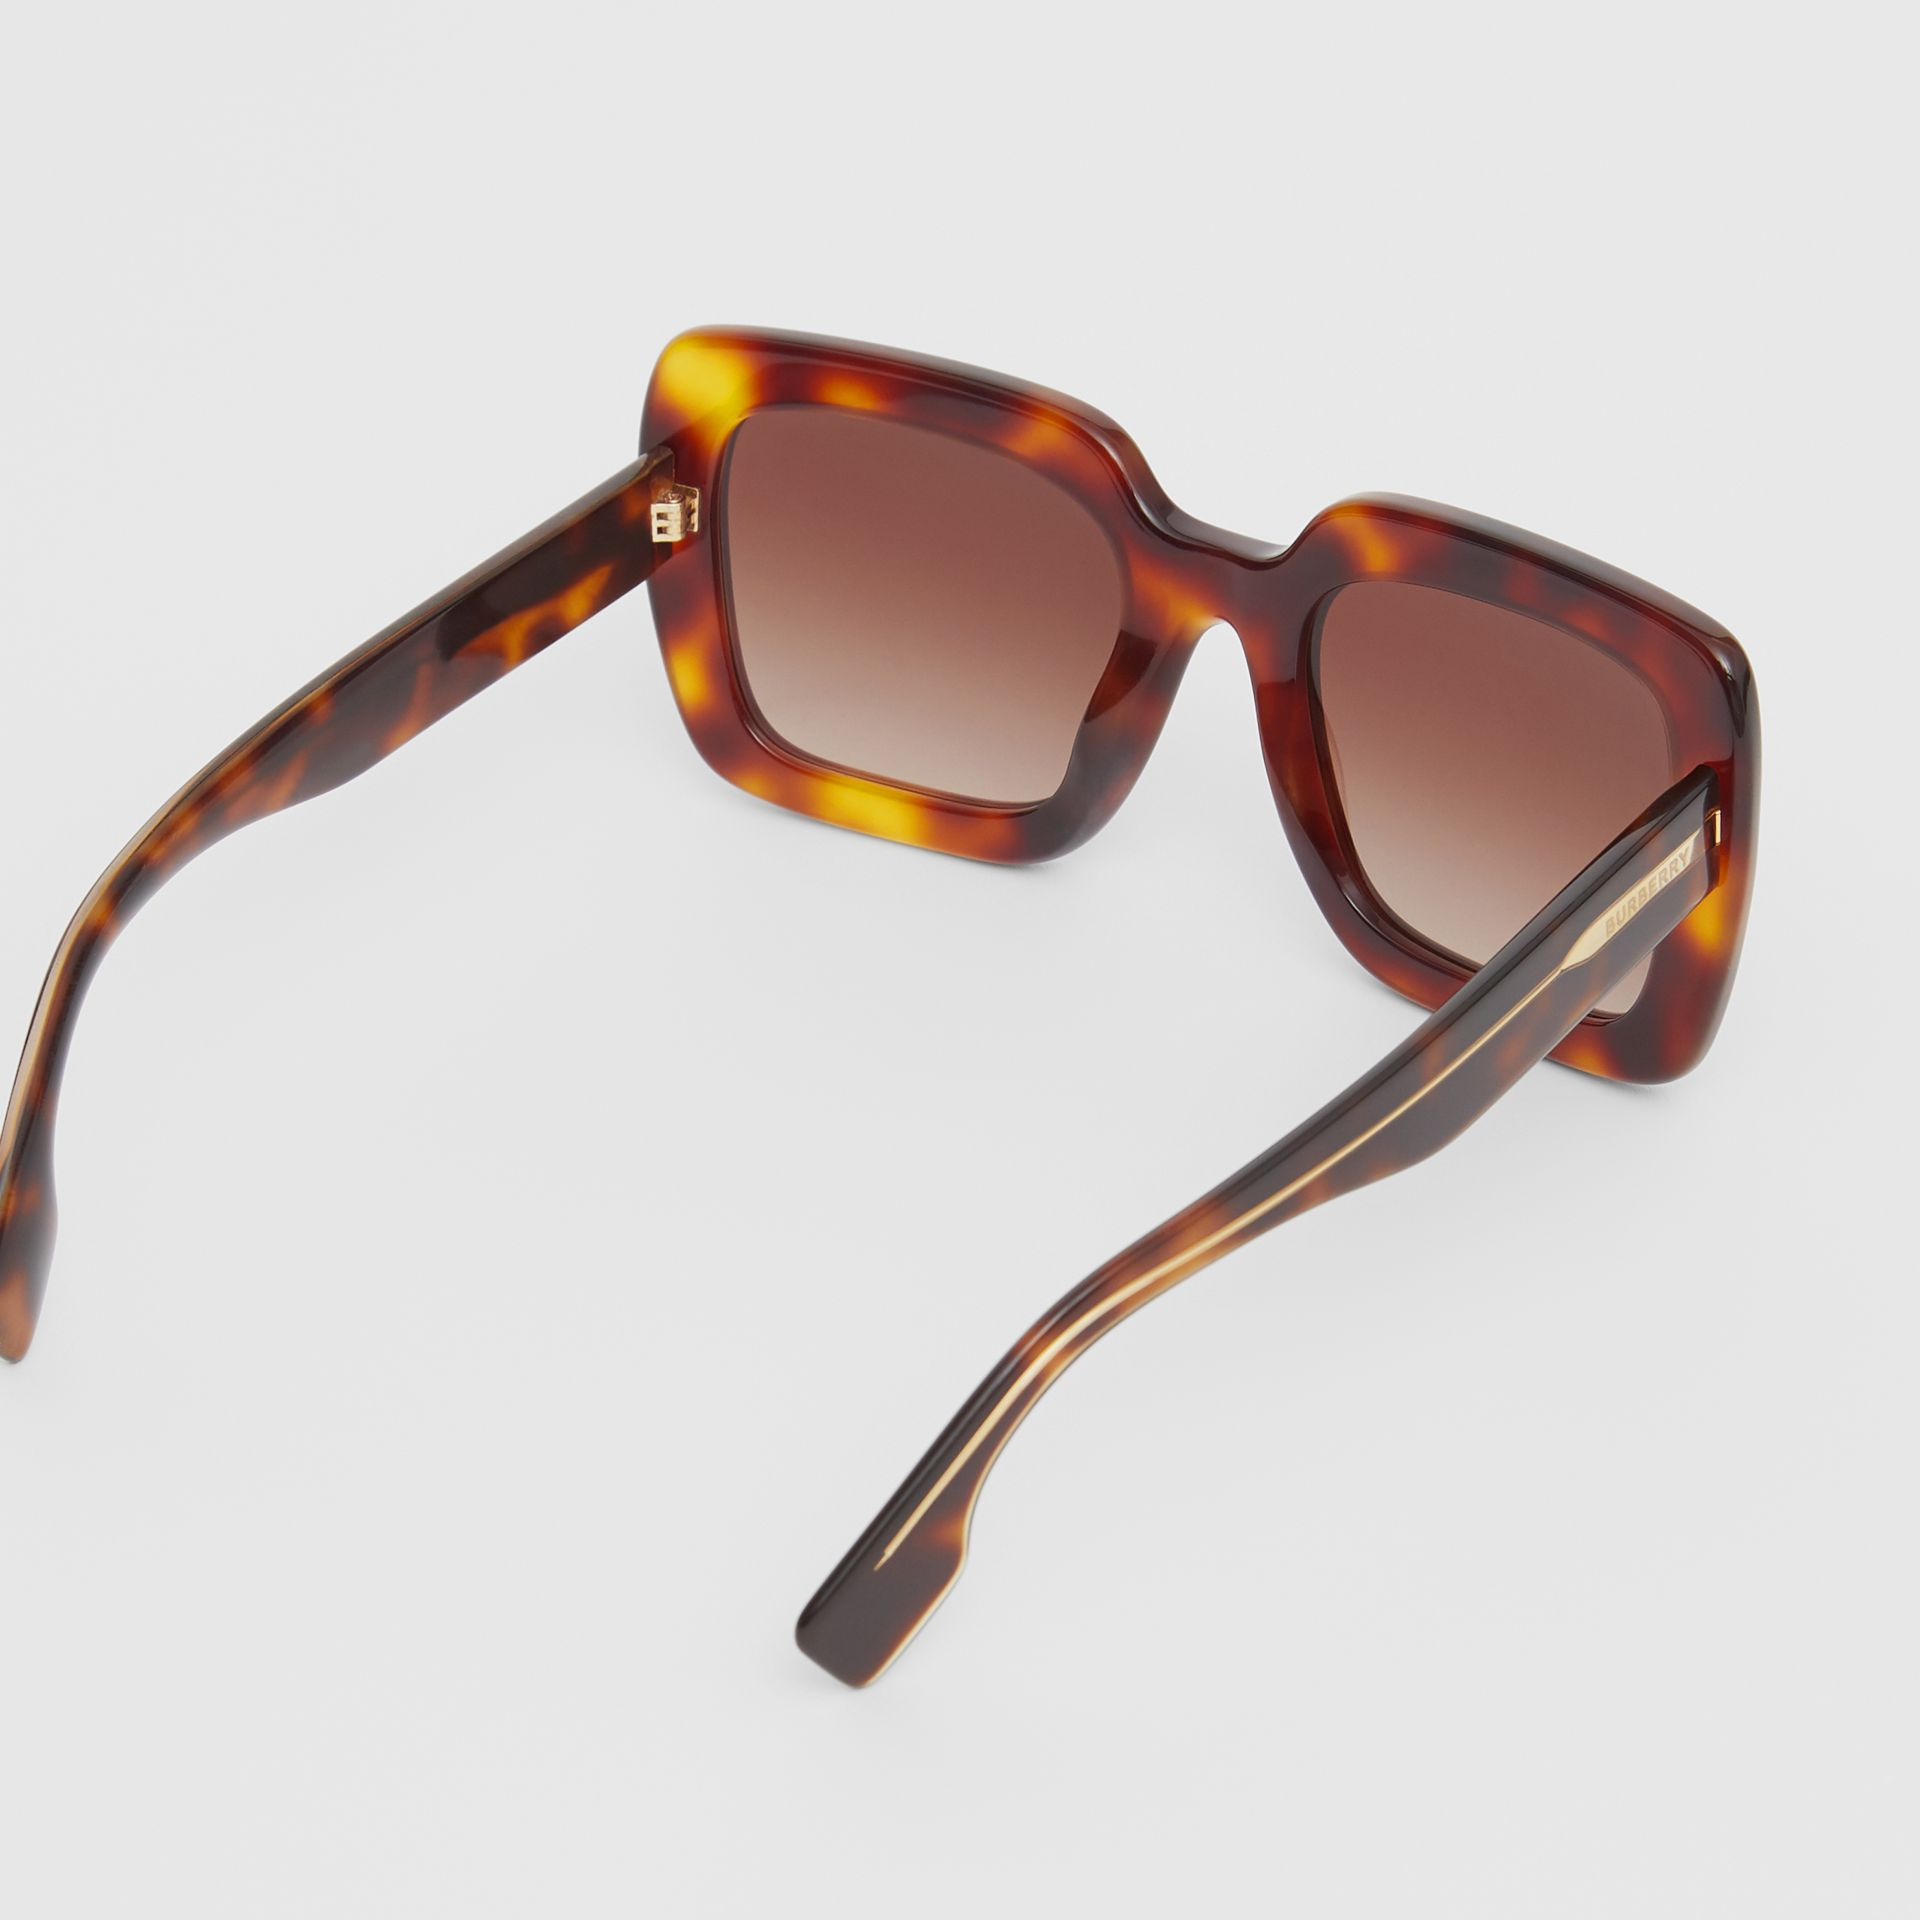 Oversized Square Frame Sunglasses in Tortoiseshell - Women | Burberry - gallery image 4